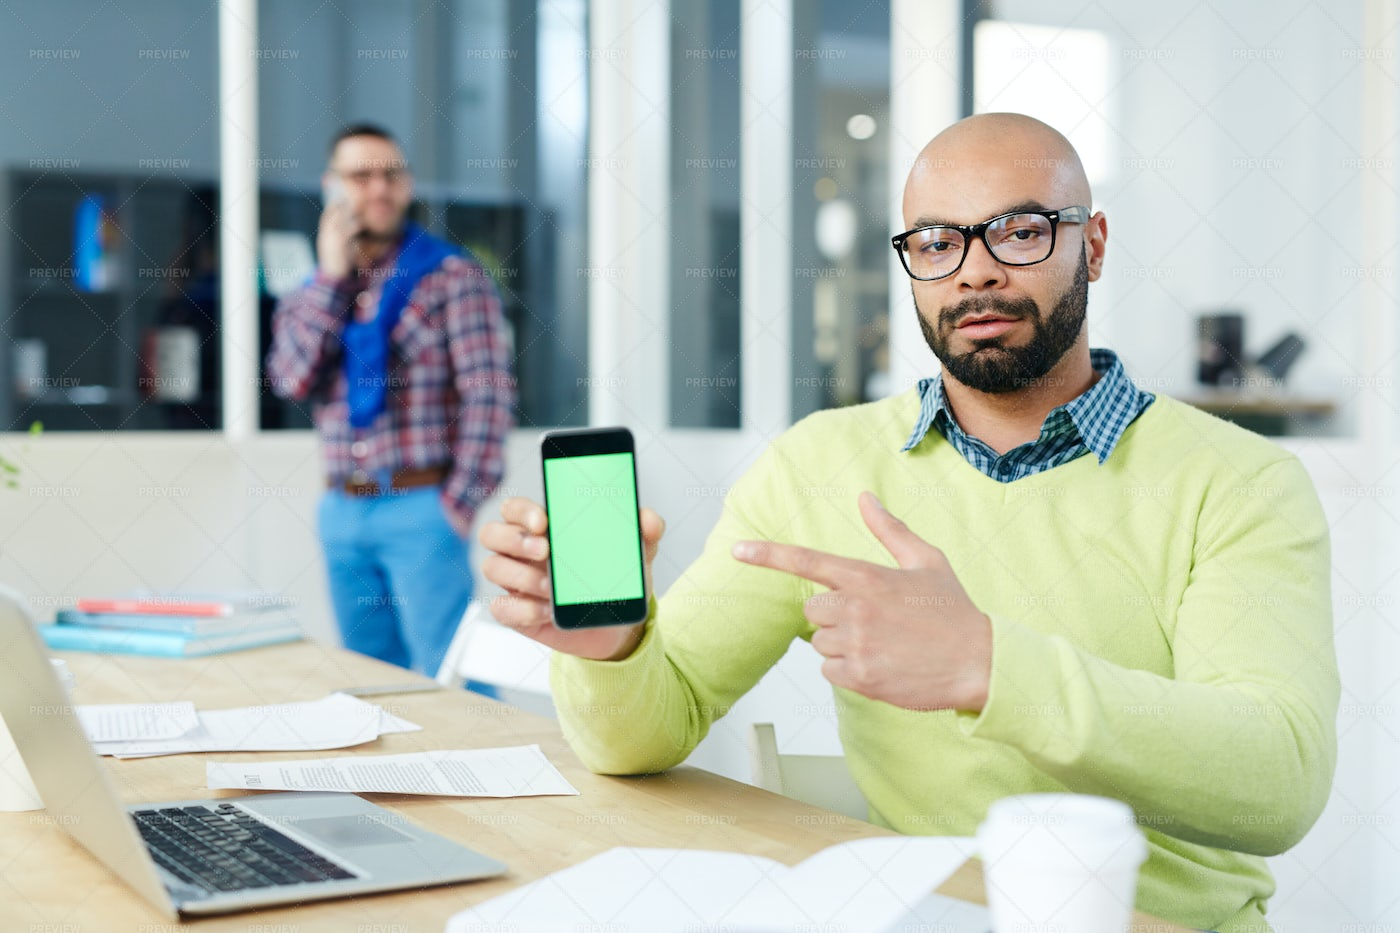 Attention To Screen: Stock Photos